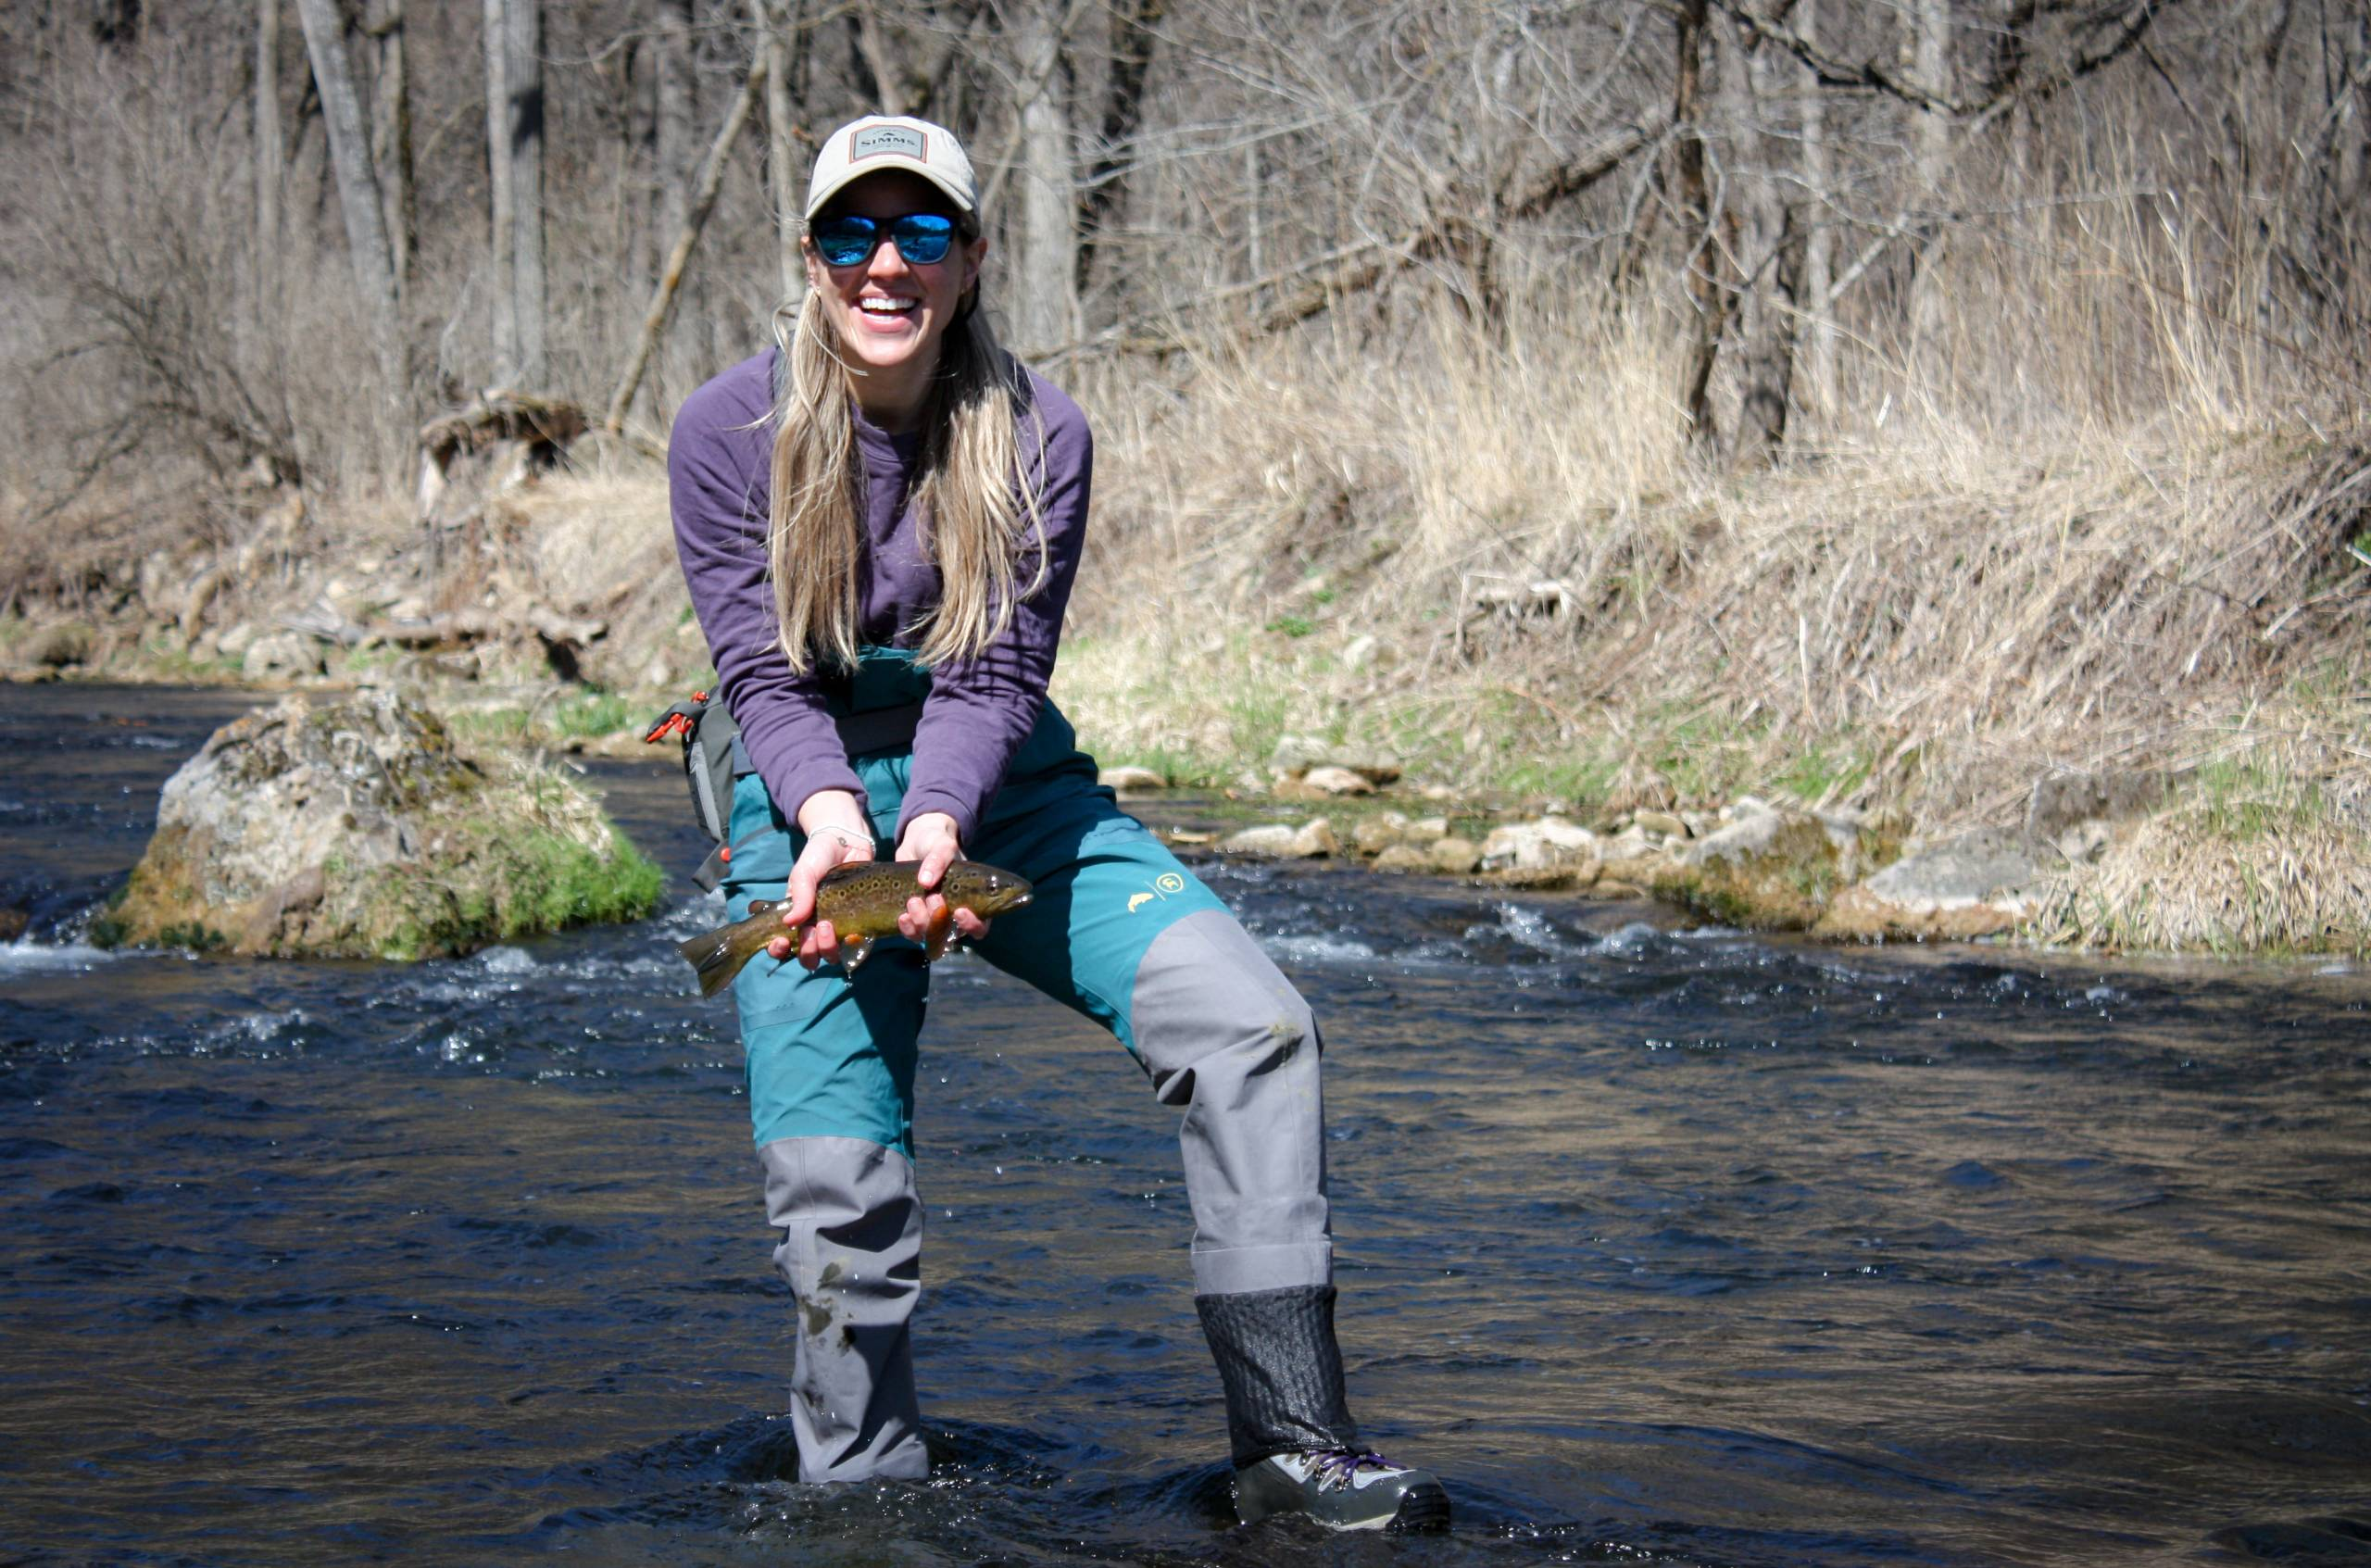 Person holding trout in Simms Backcountry flyweight fly fishing waders lifestyle